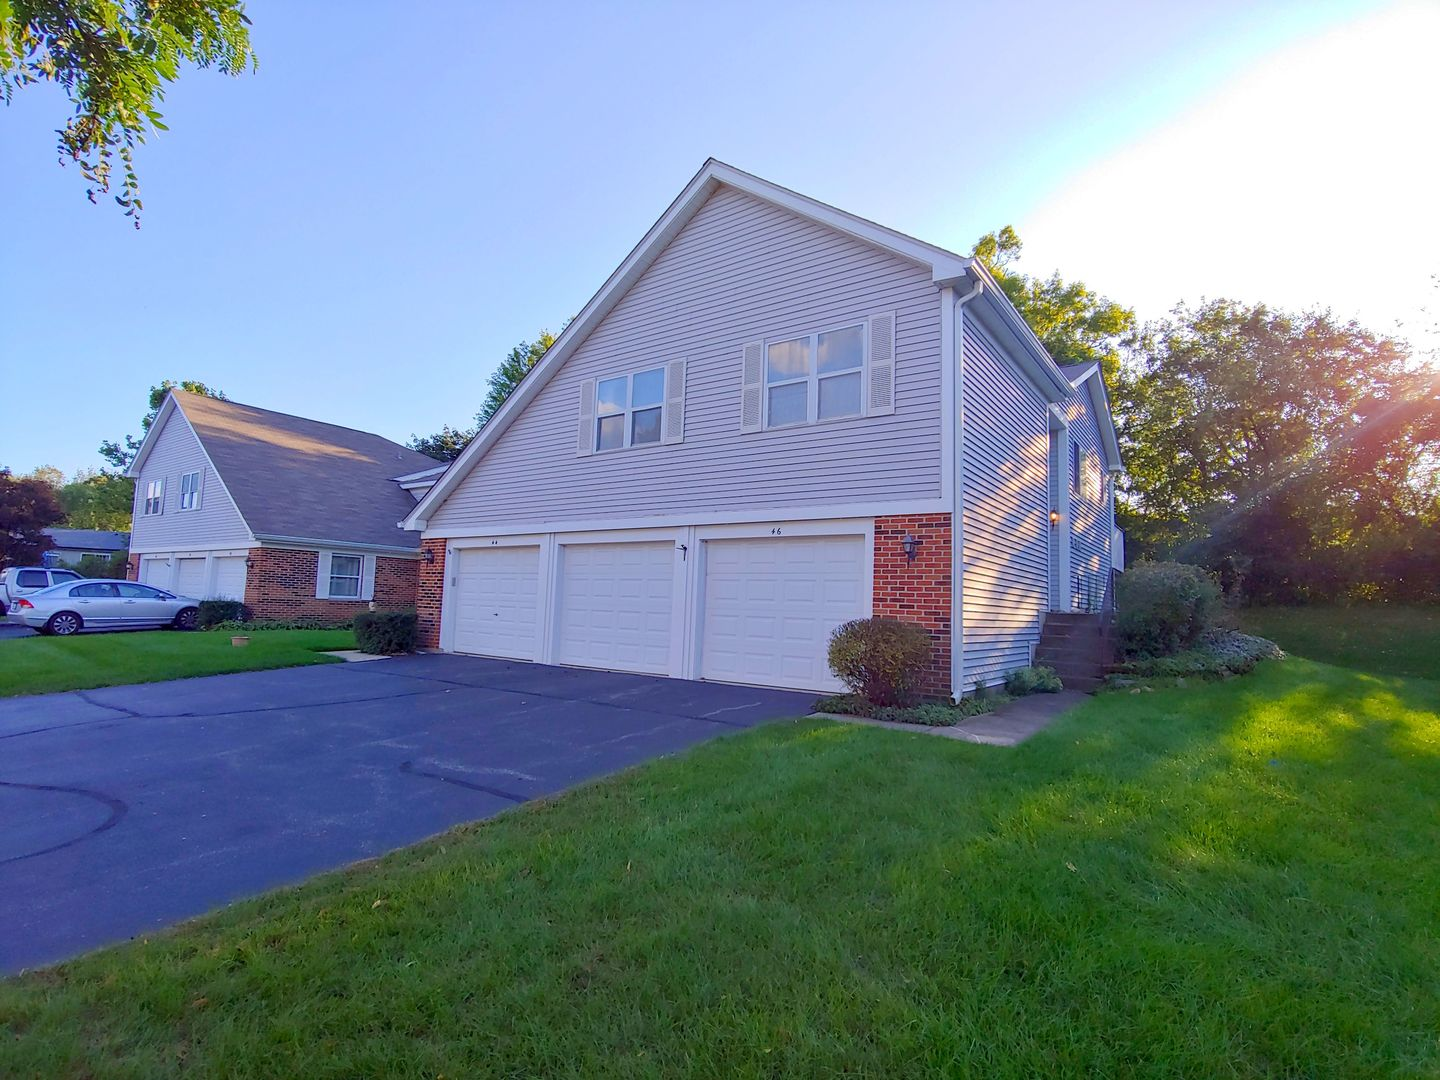 Photo for 46 Pine Circle, Cary, IL 60013 (MLS # 10529560)